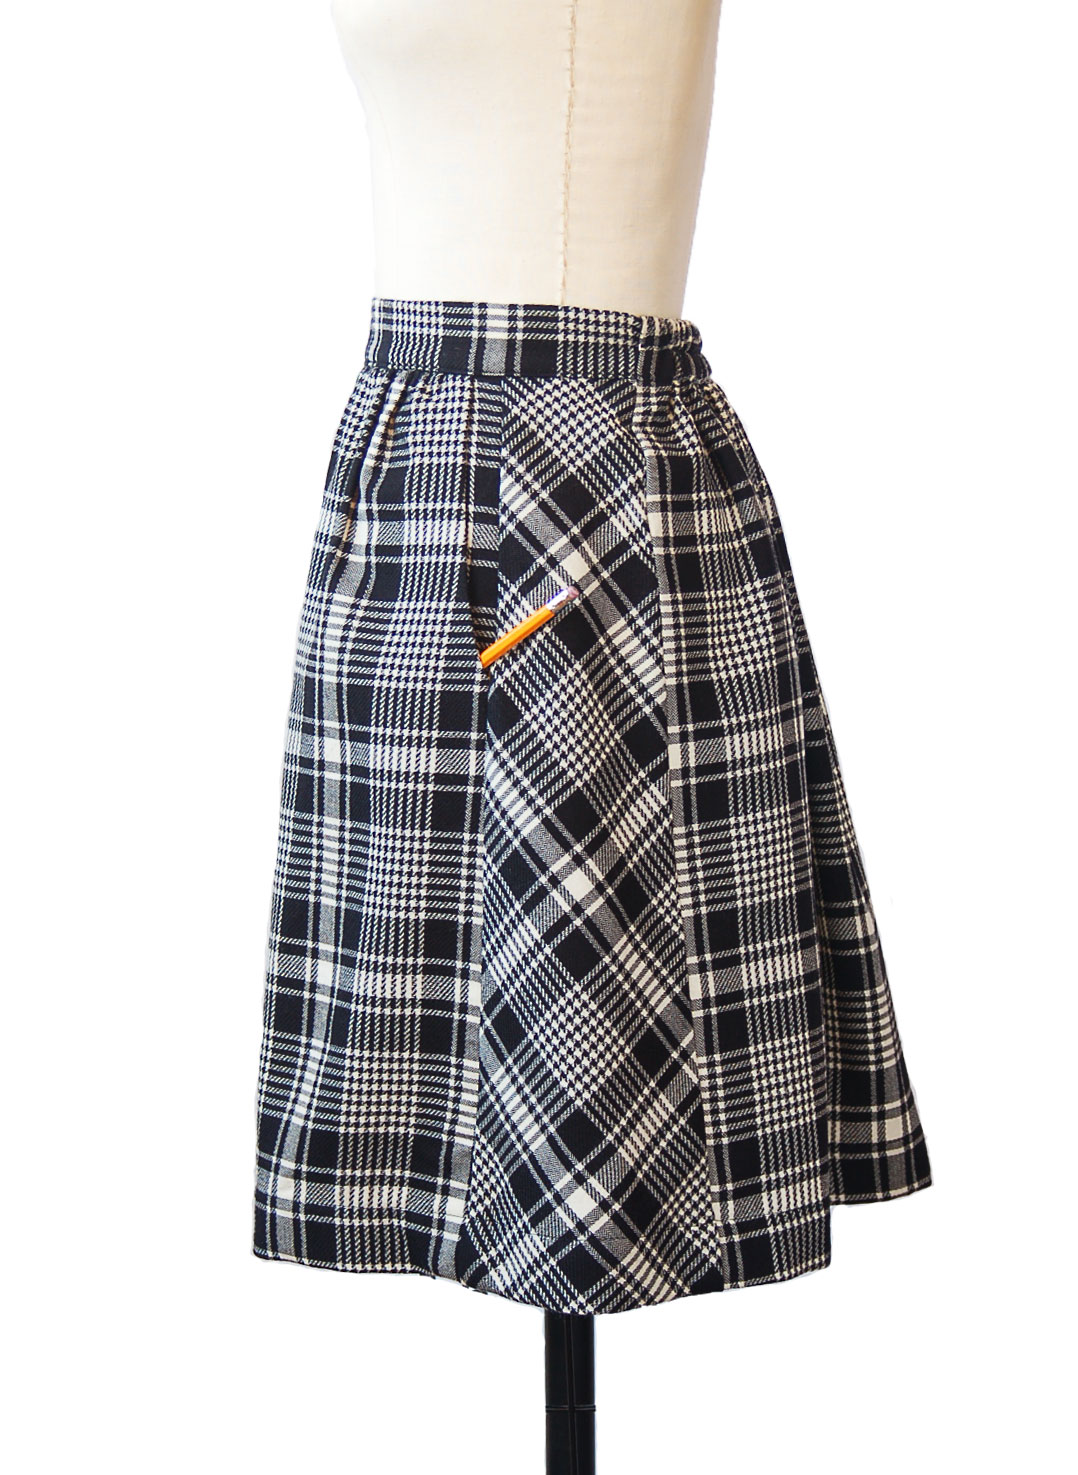 The New Everyday Skirt Sewing Pattern | Blog | Oliver + S